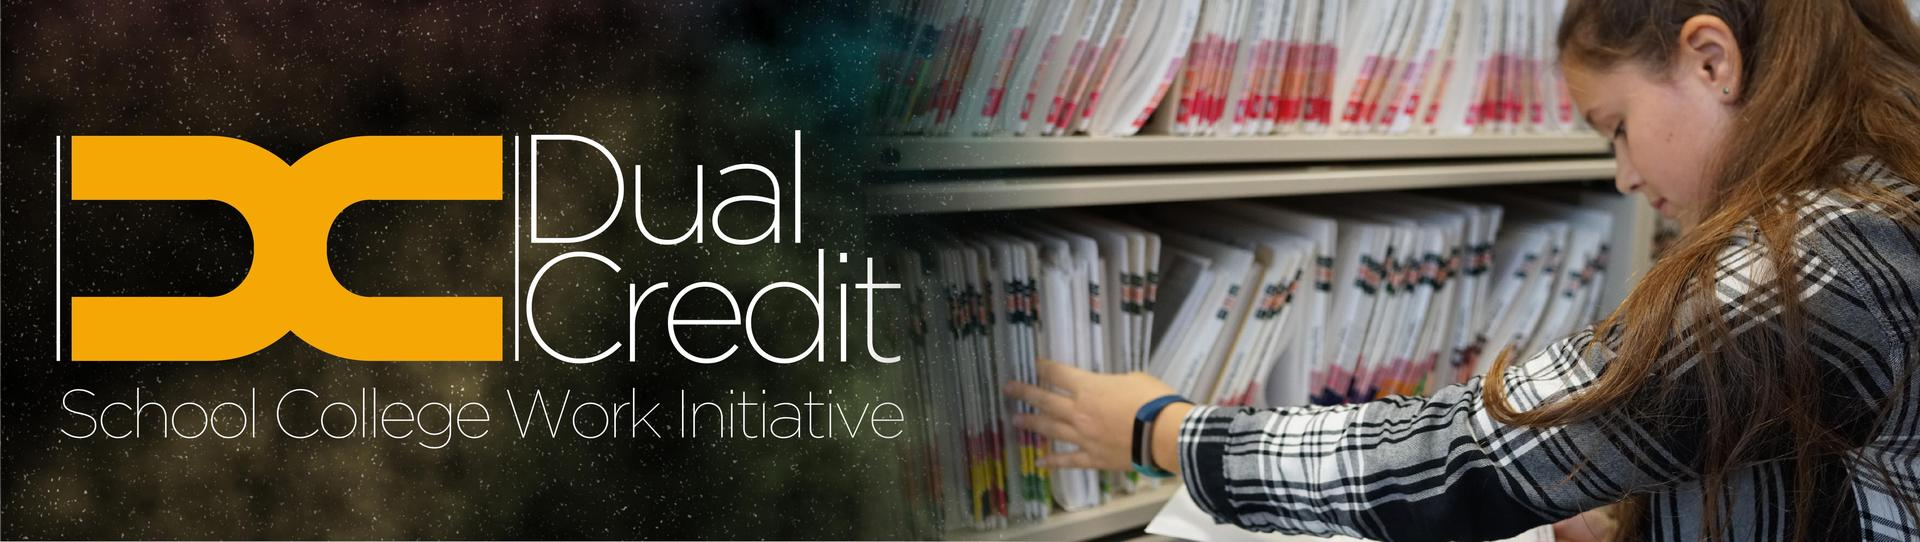 Dual Credit logo. 'School College Work initiative.' Image of female student looking through files on a shelf.